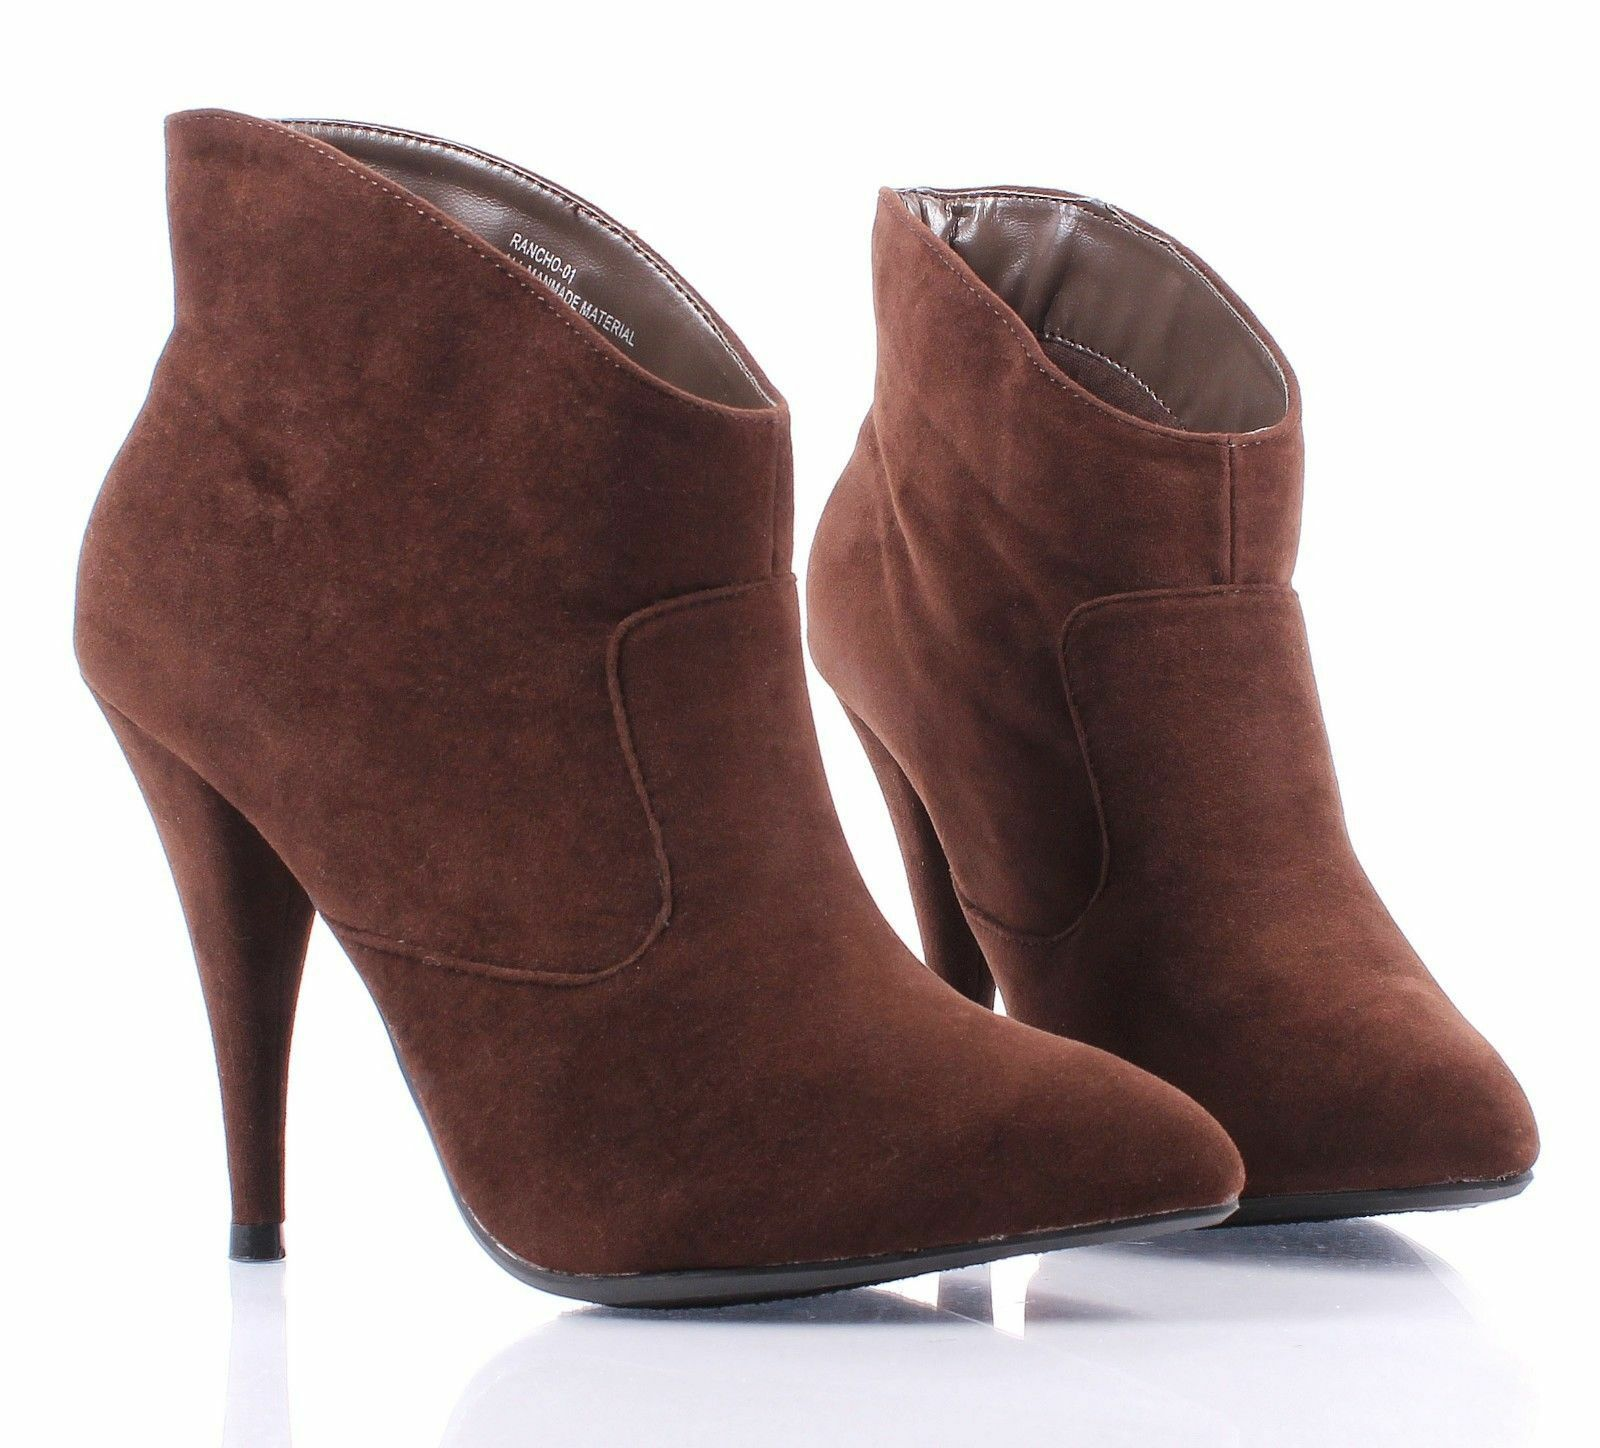 Brown Point Toe Narrow Sexy Dressy High Heel Womens Ankle Boots Size 6.5